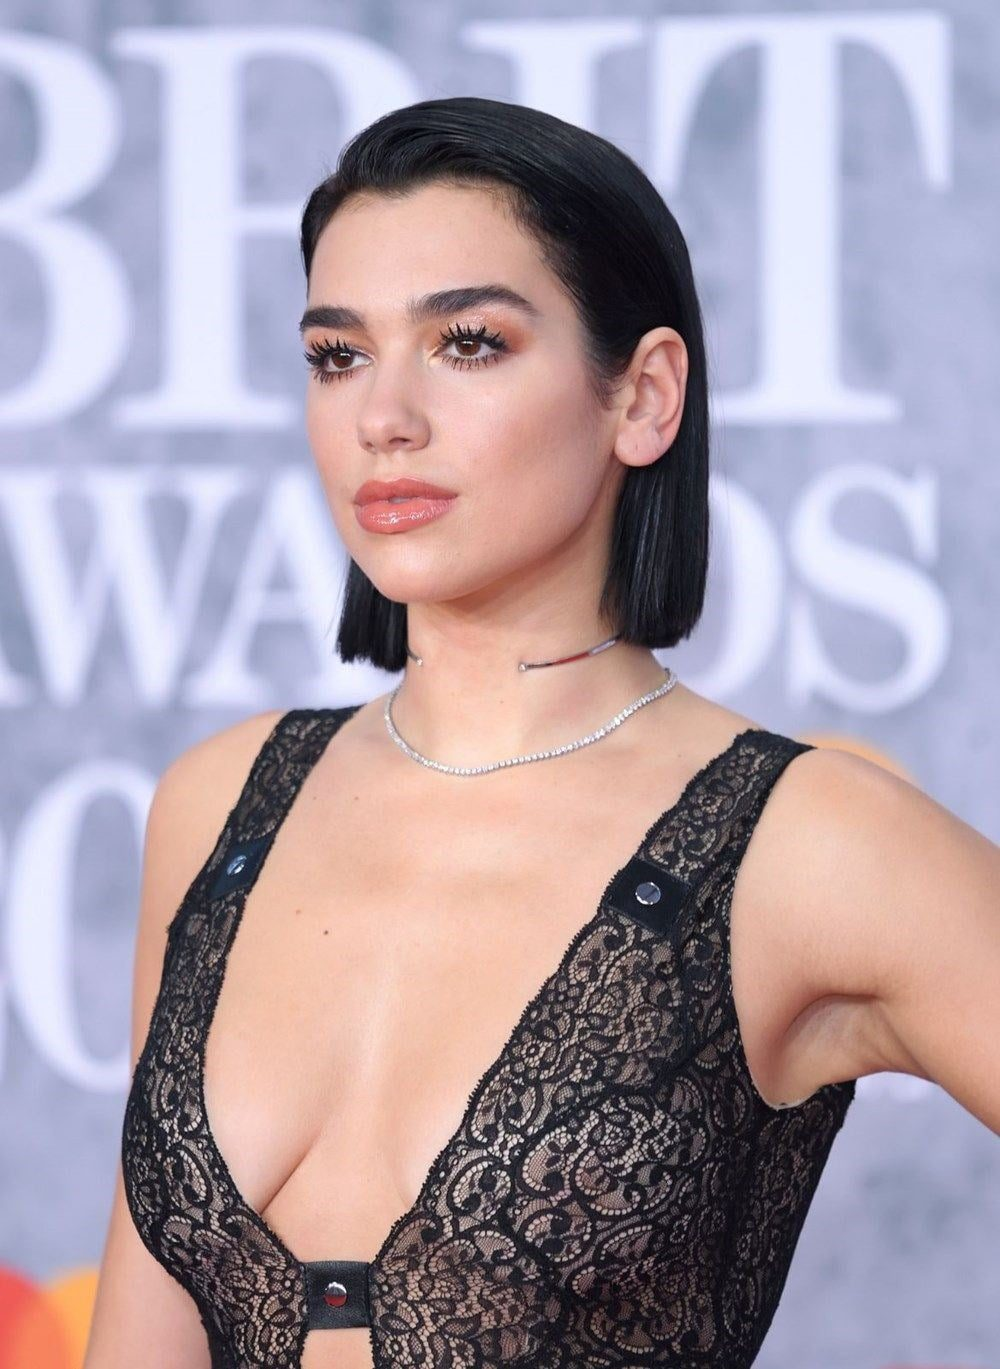 Images of Dua Lipa who was attacked by a fan appeared 1